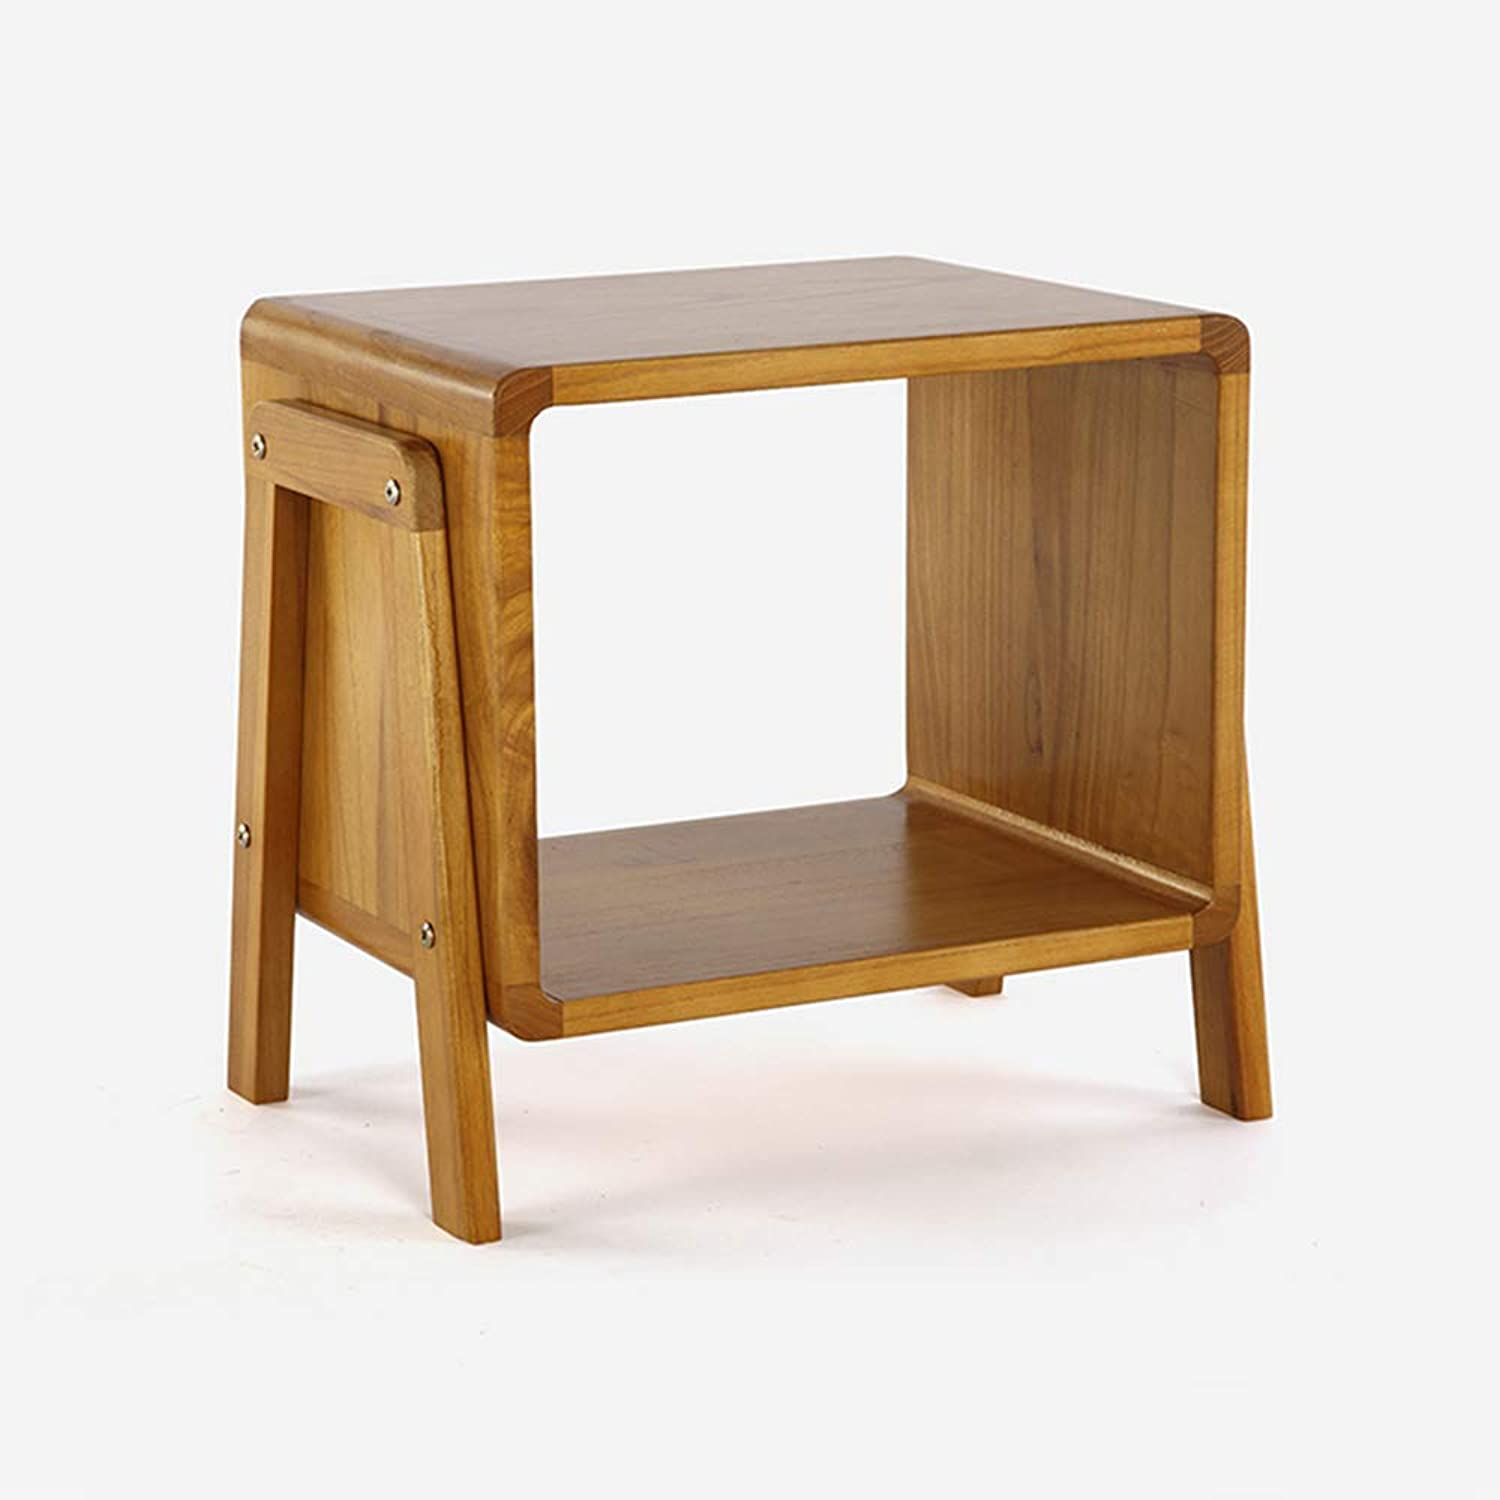 Small Coffee Table Creative Side Table Solid Wood Multi-Functional Low Coffee Table 2 colors (color   Light Brown)